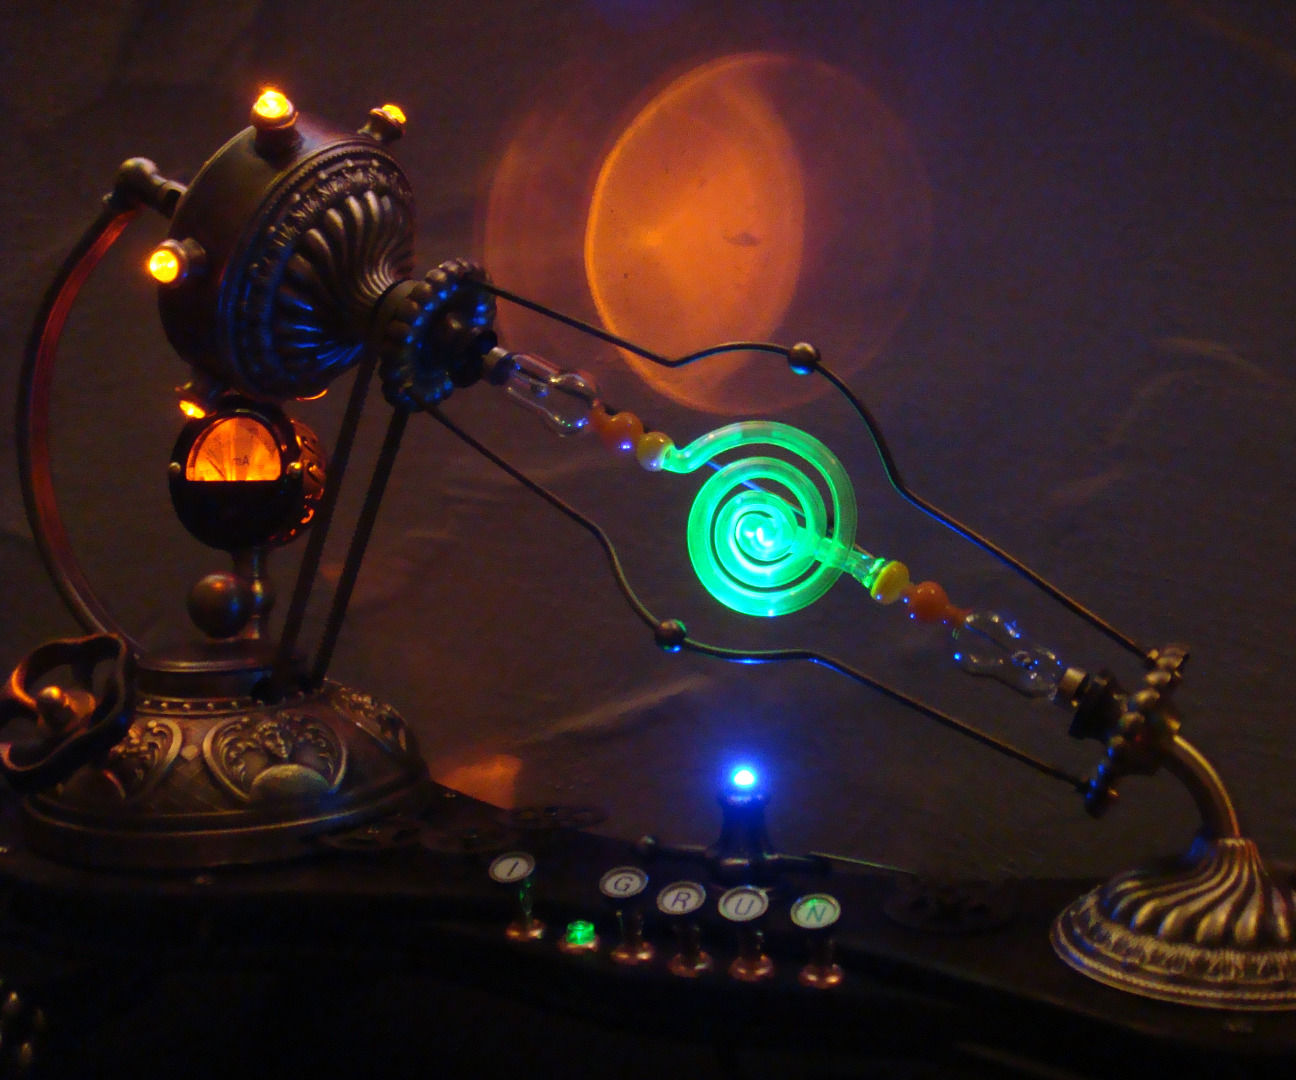 IGRUN - Daughter of Aetheria. A High Voltage Steampunk Lamp